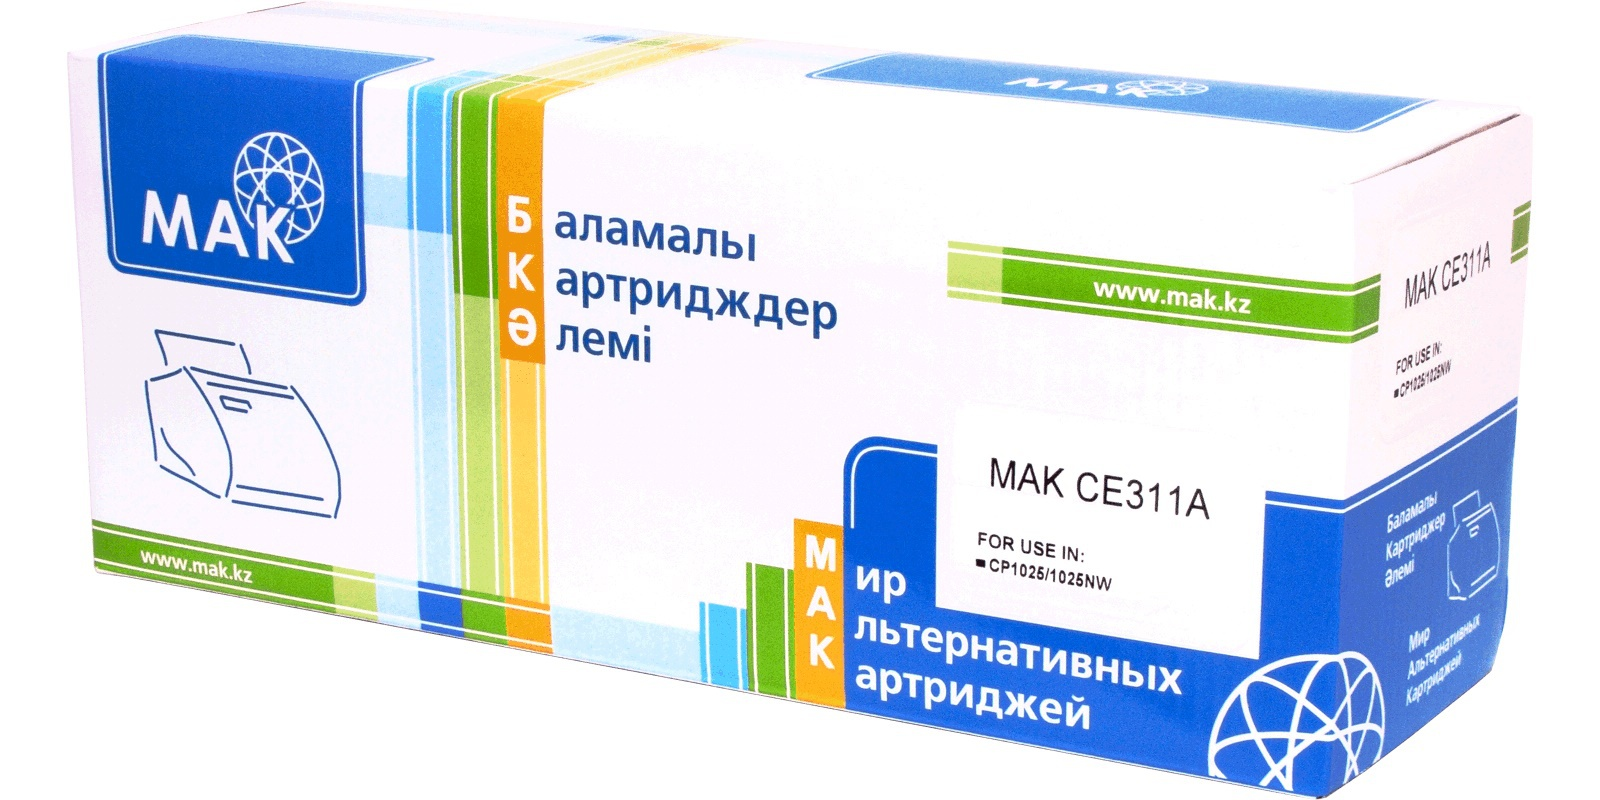 MAK №126A CE311A/Cartridge 729C голубой (cyan), для HP/Canon, до 1000 стр.